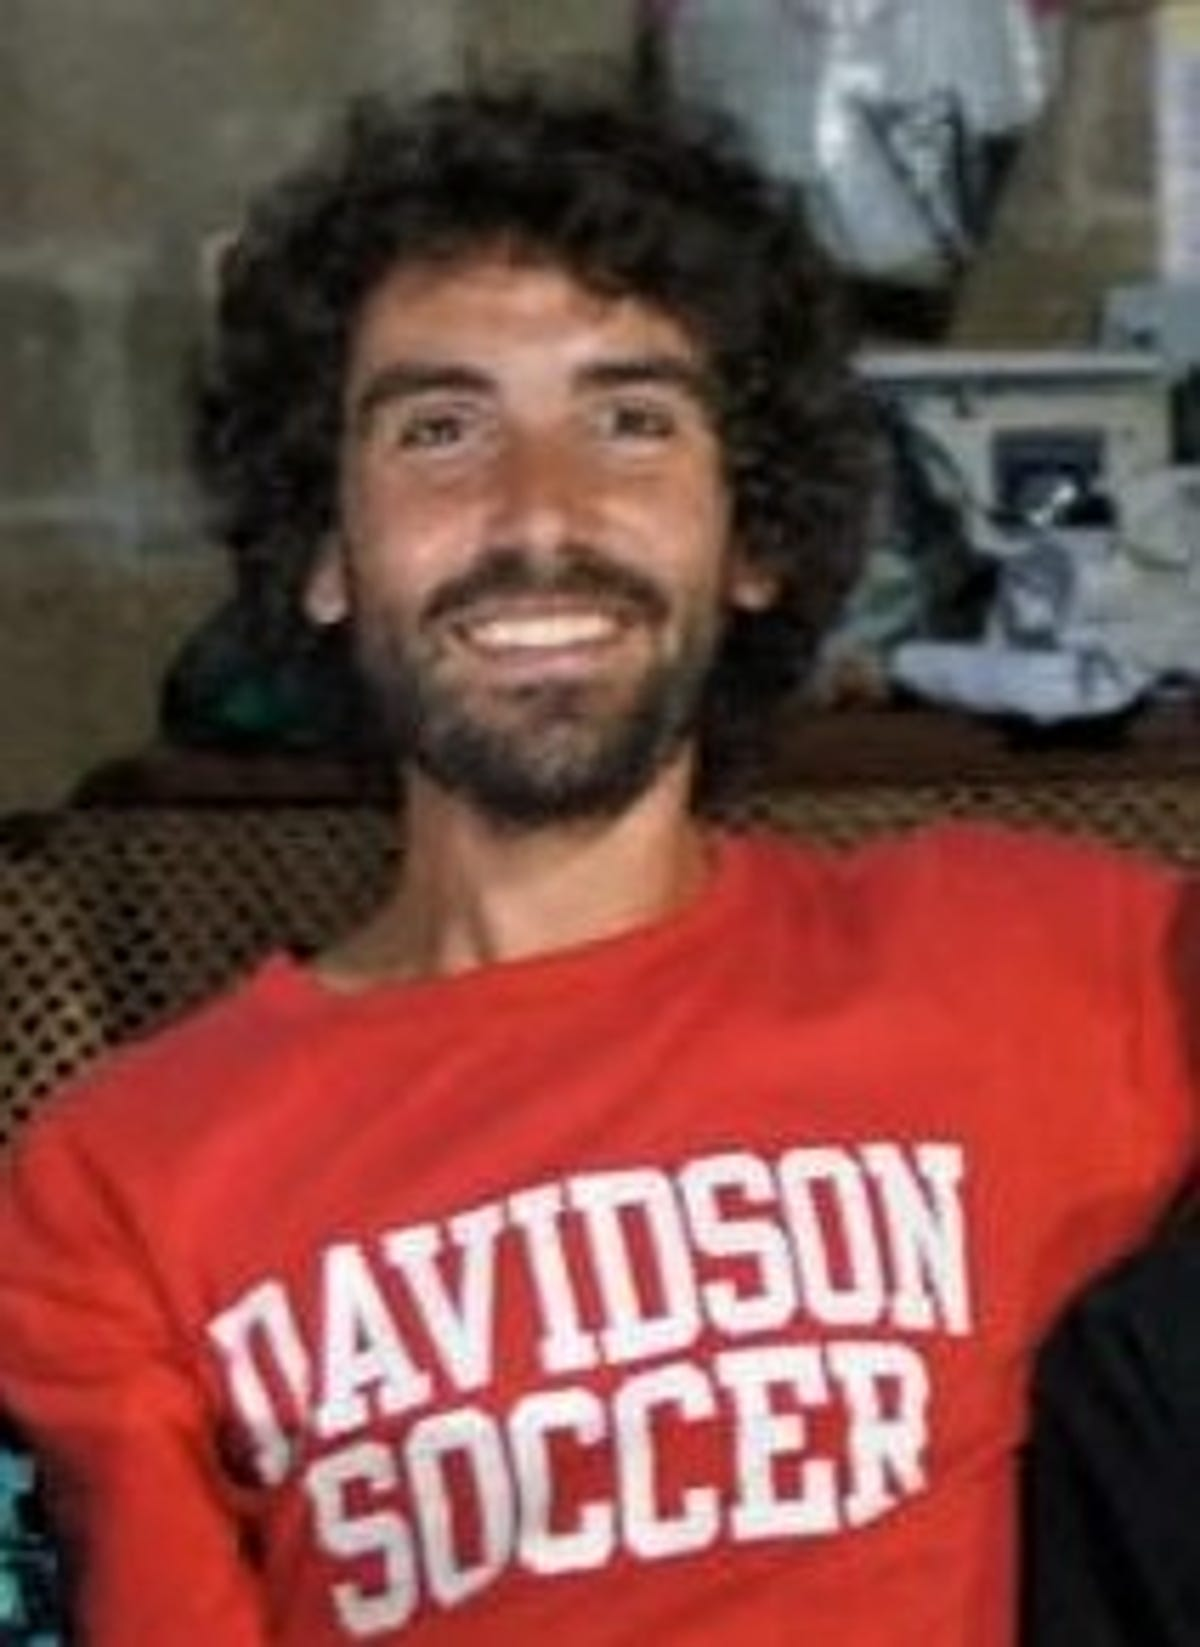 Missing US tourist Patrick Braxton-Andrew killed by Mexico drug cartel